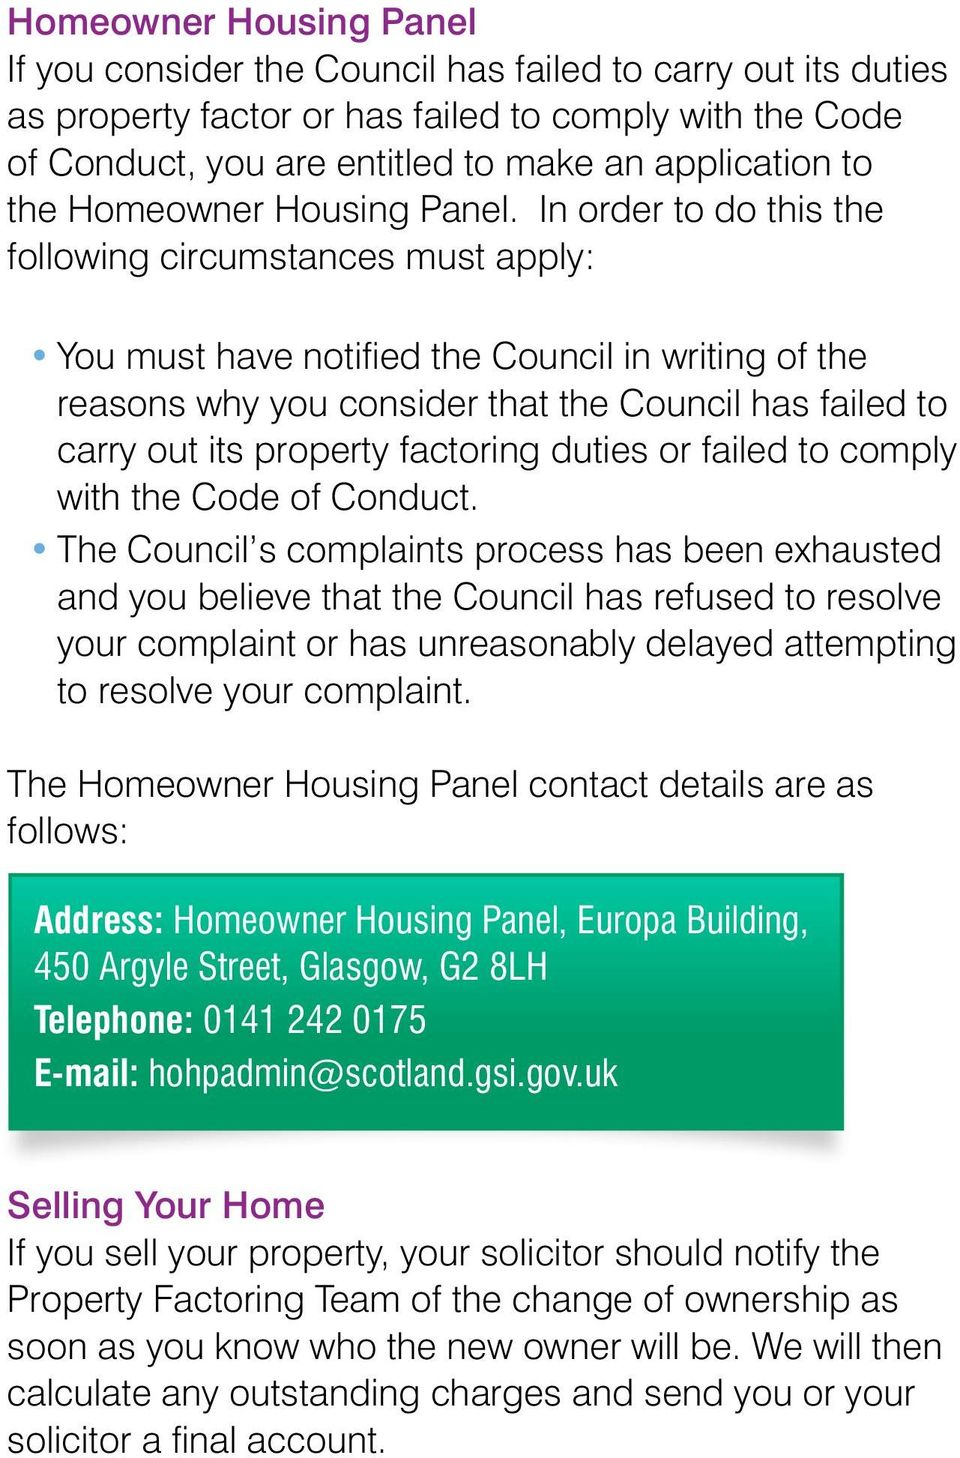 In order to do this the following circumstances must apply: You must have notified the Council in writing of the reasons why you consider that the Council has failed to carry out its property